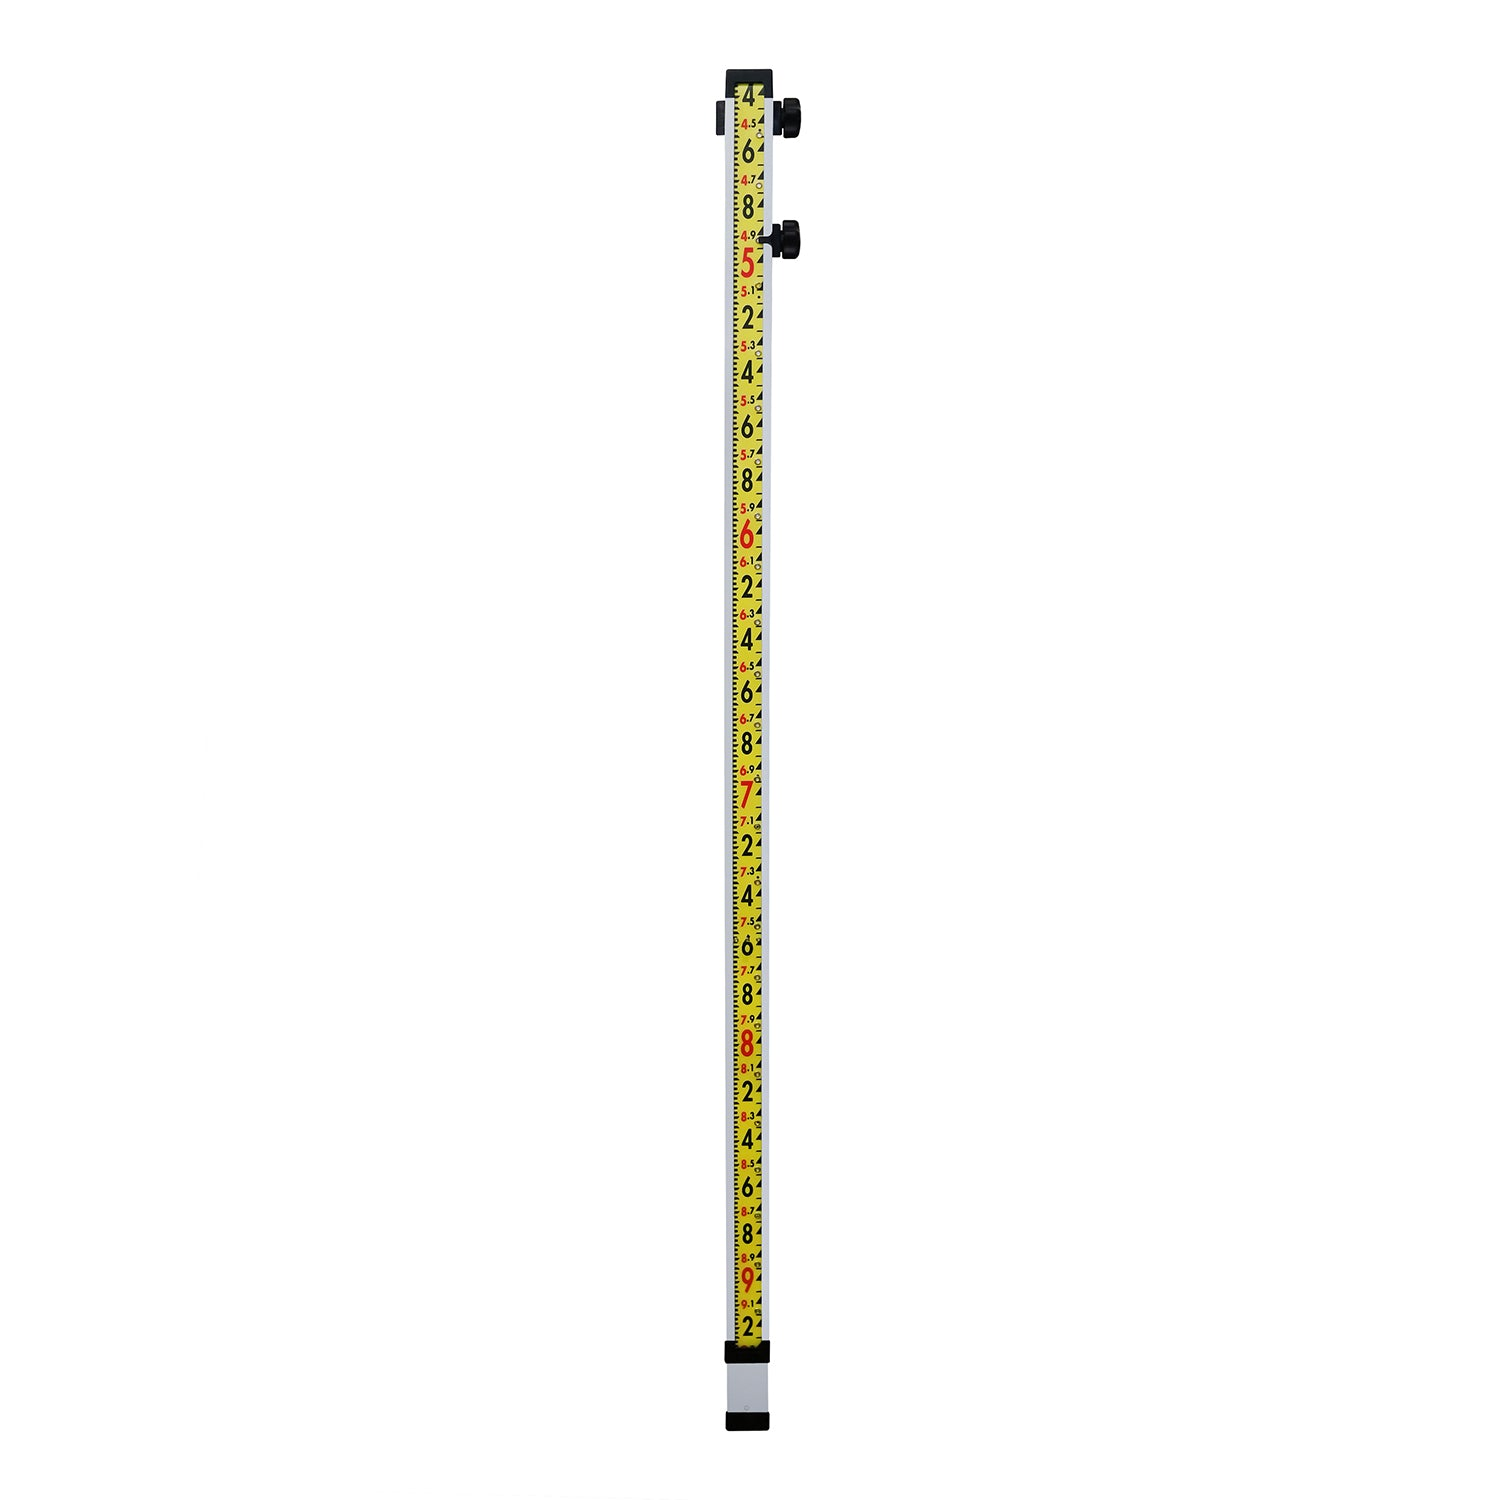 GeoMax 10 Ft Direct Elevation Optical Rod (Ft, 10ths, 100ths) -Rods, Poles & Accessories- eGPS Solutions Inc.